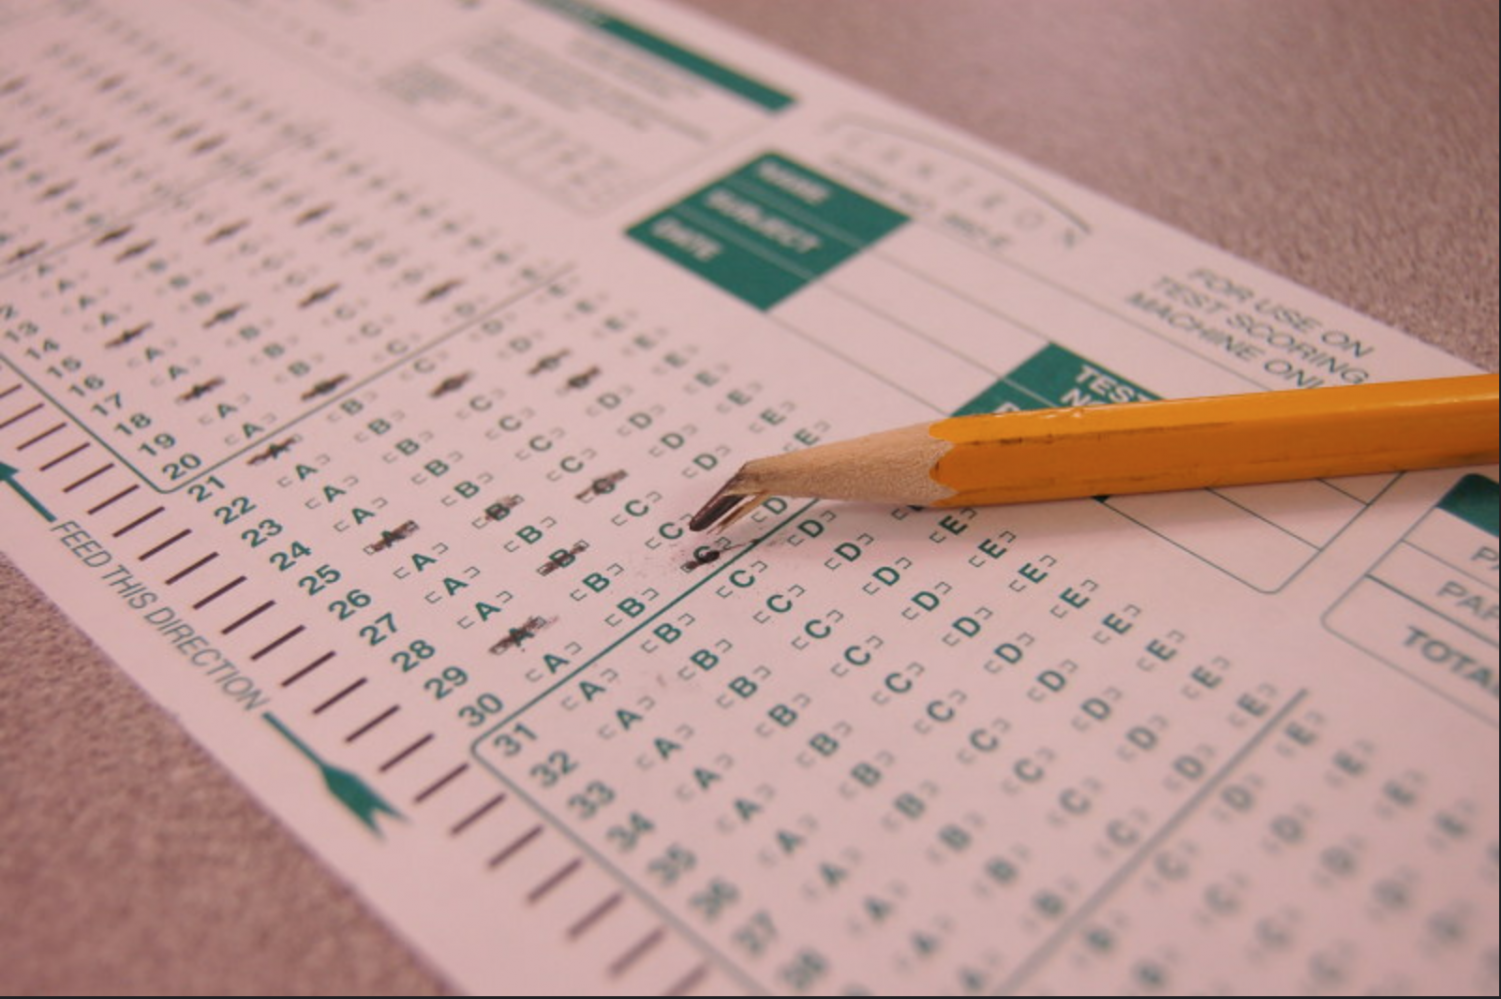 The SAT is an infamous test that many high school students dread taking.